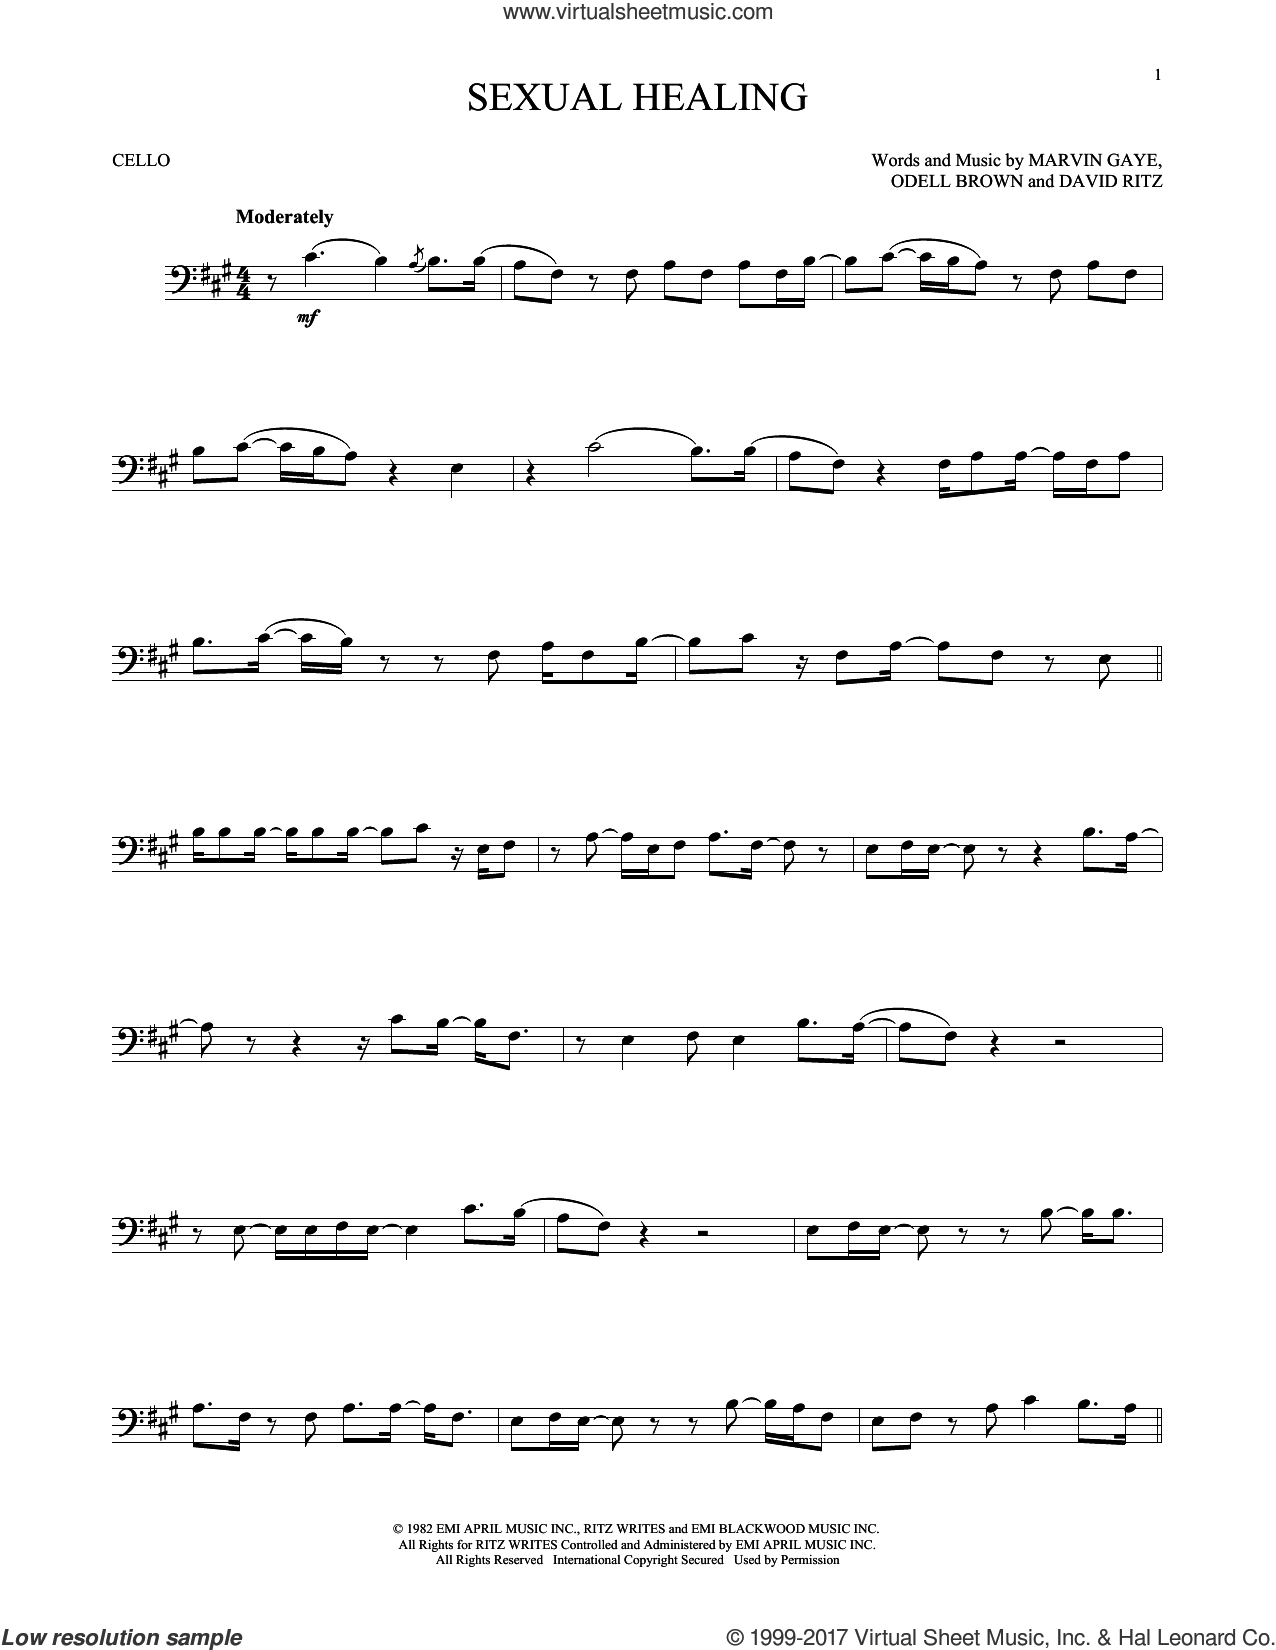 Sexual Healing sheet music for cello solo by Marvin Gaye, David Ritz and Odell Brown, intermediate skill level